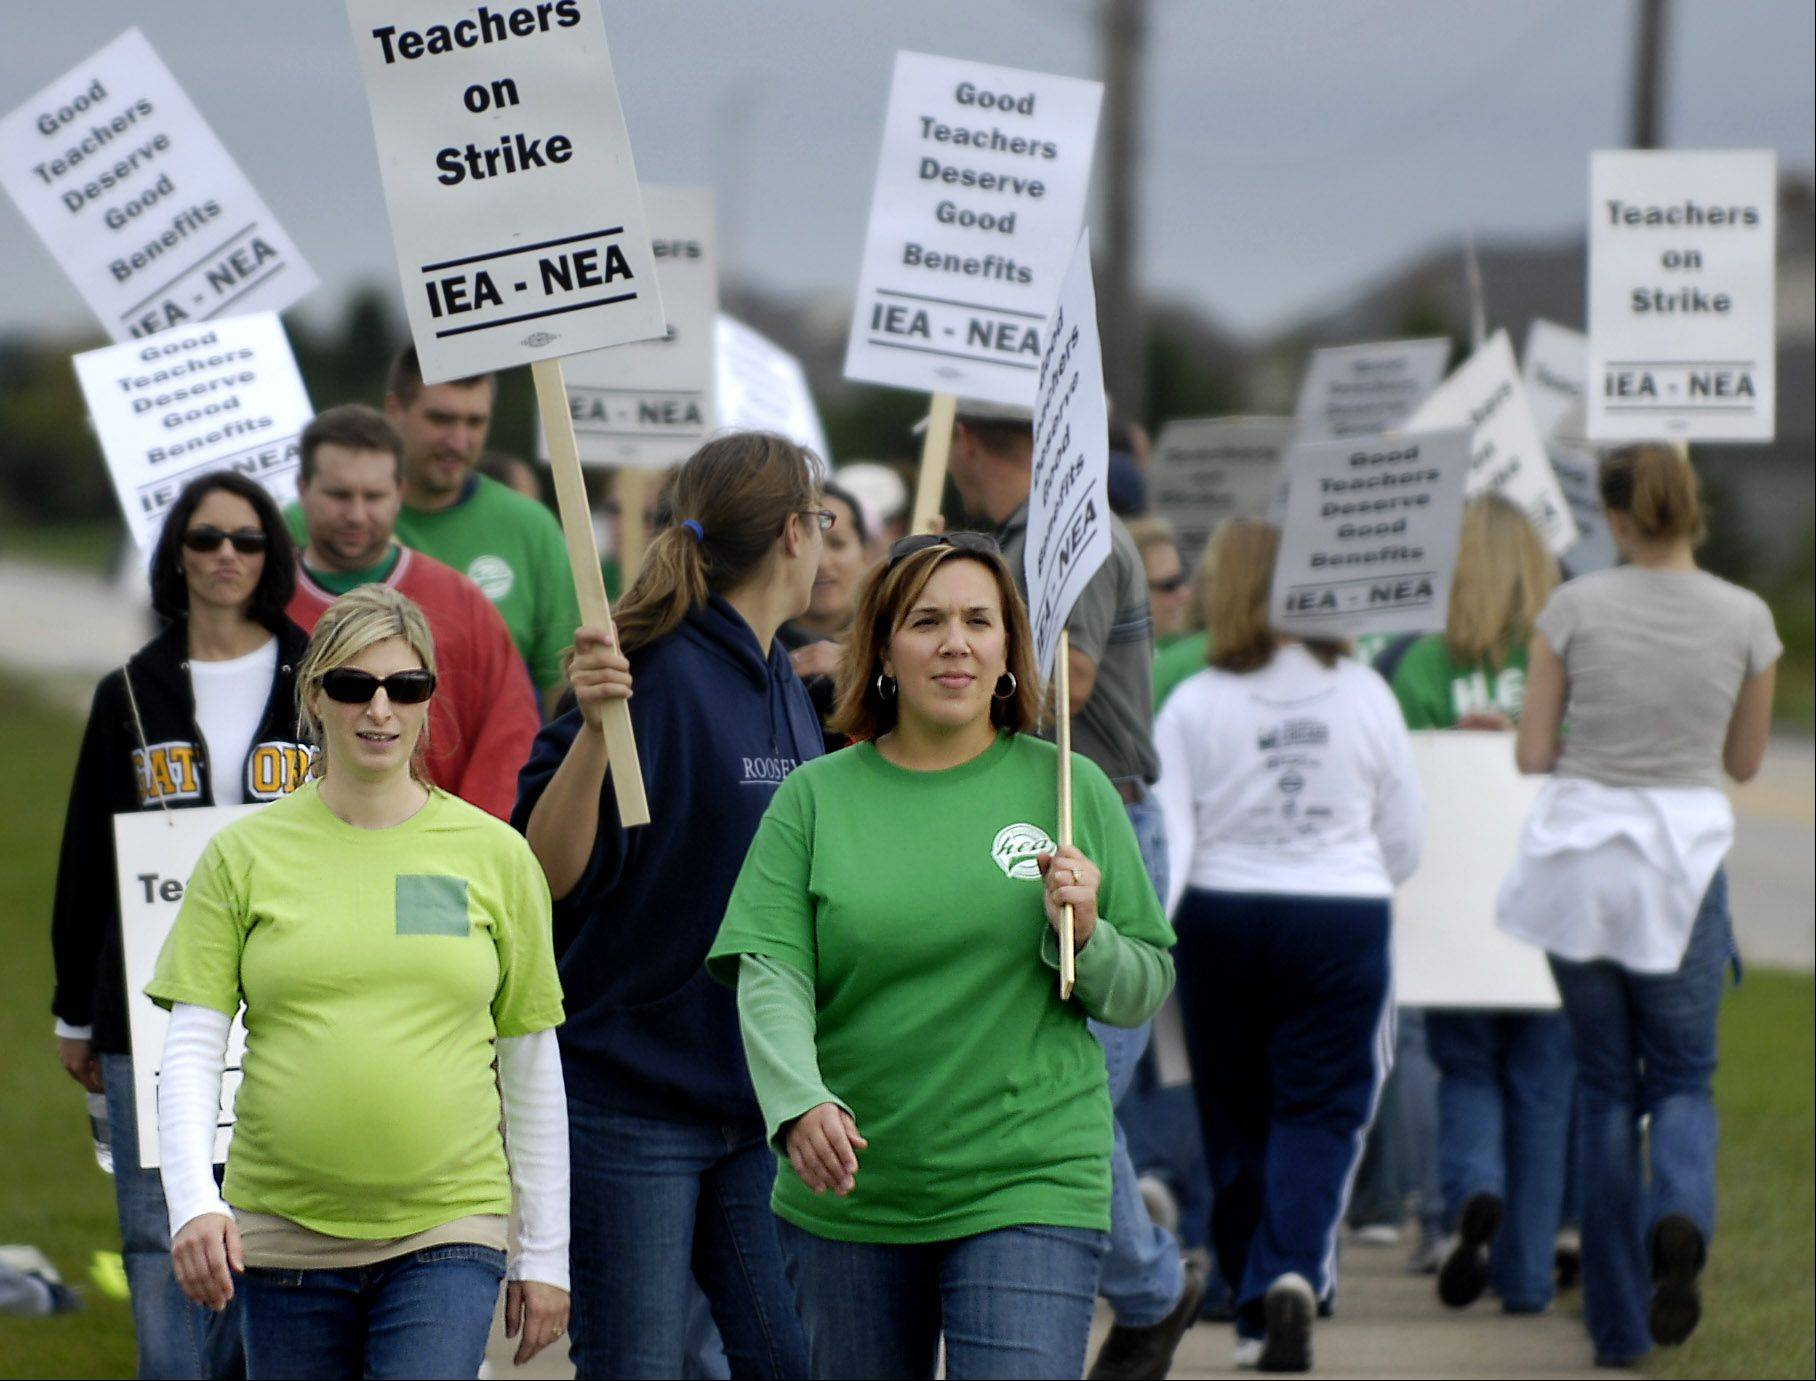 Suburban teachers' right to strike was not taken away in recent education reforms, though the law will make it tougher for Chicago teachers to strike. Above, teachers in Huntley went on strike in 2008.